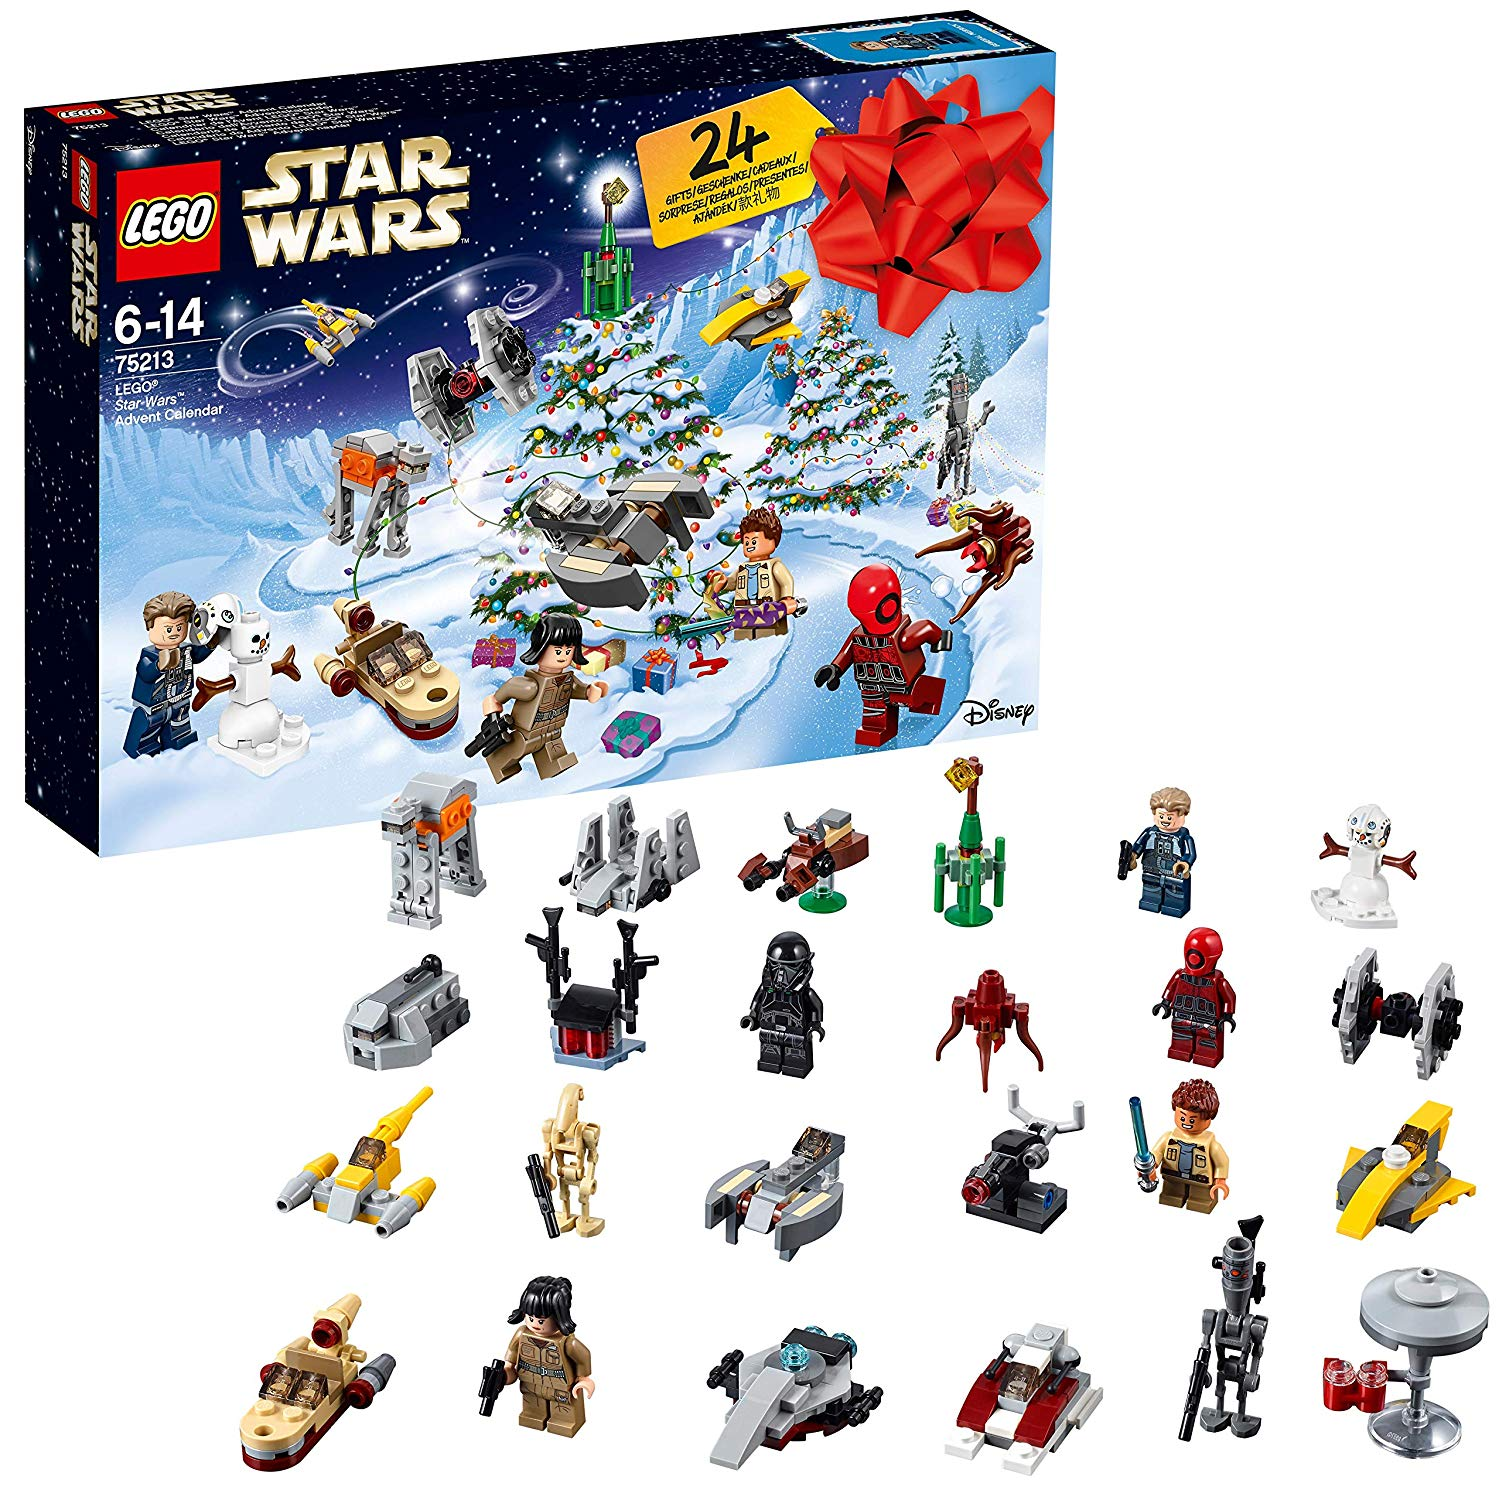 LEGO Star Wars 2018 Advent Calendar 75213